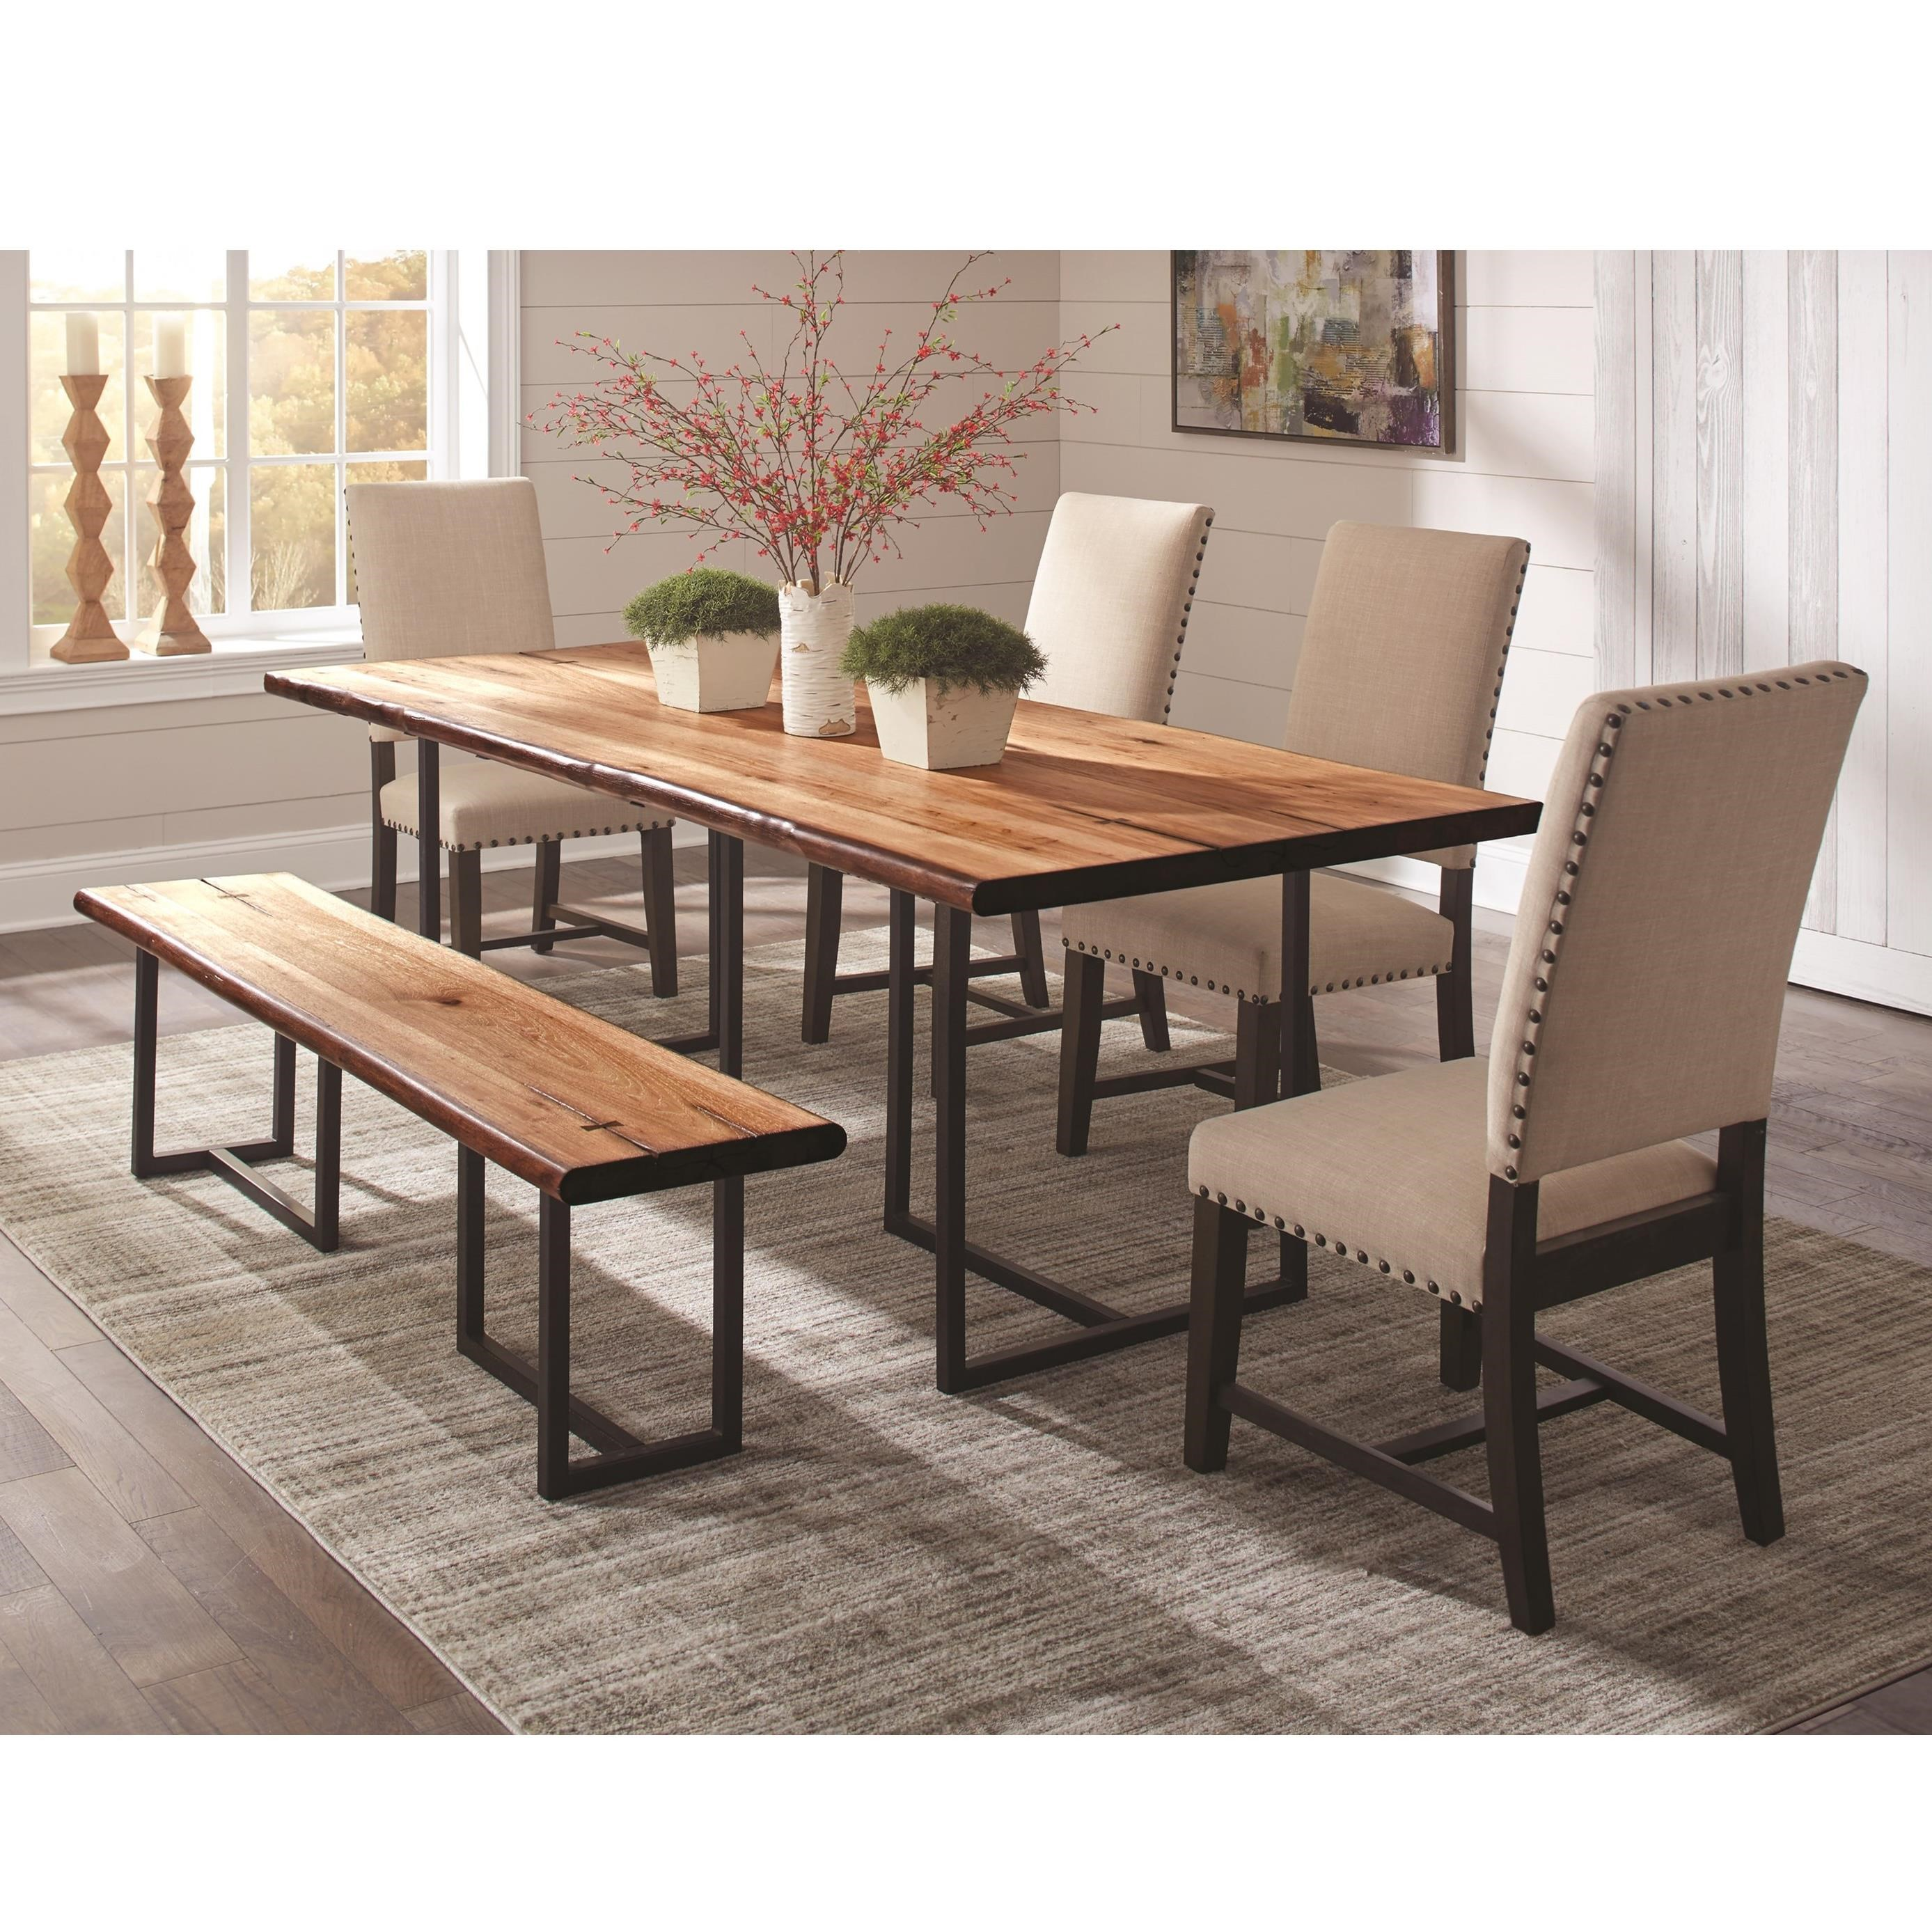 Dining Room Sets Dallas Tx: Coaster Suthers 5pc Beige Dining Table Set Dallas TX